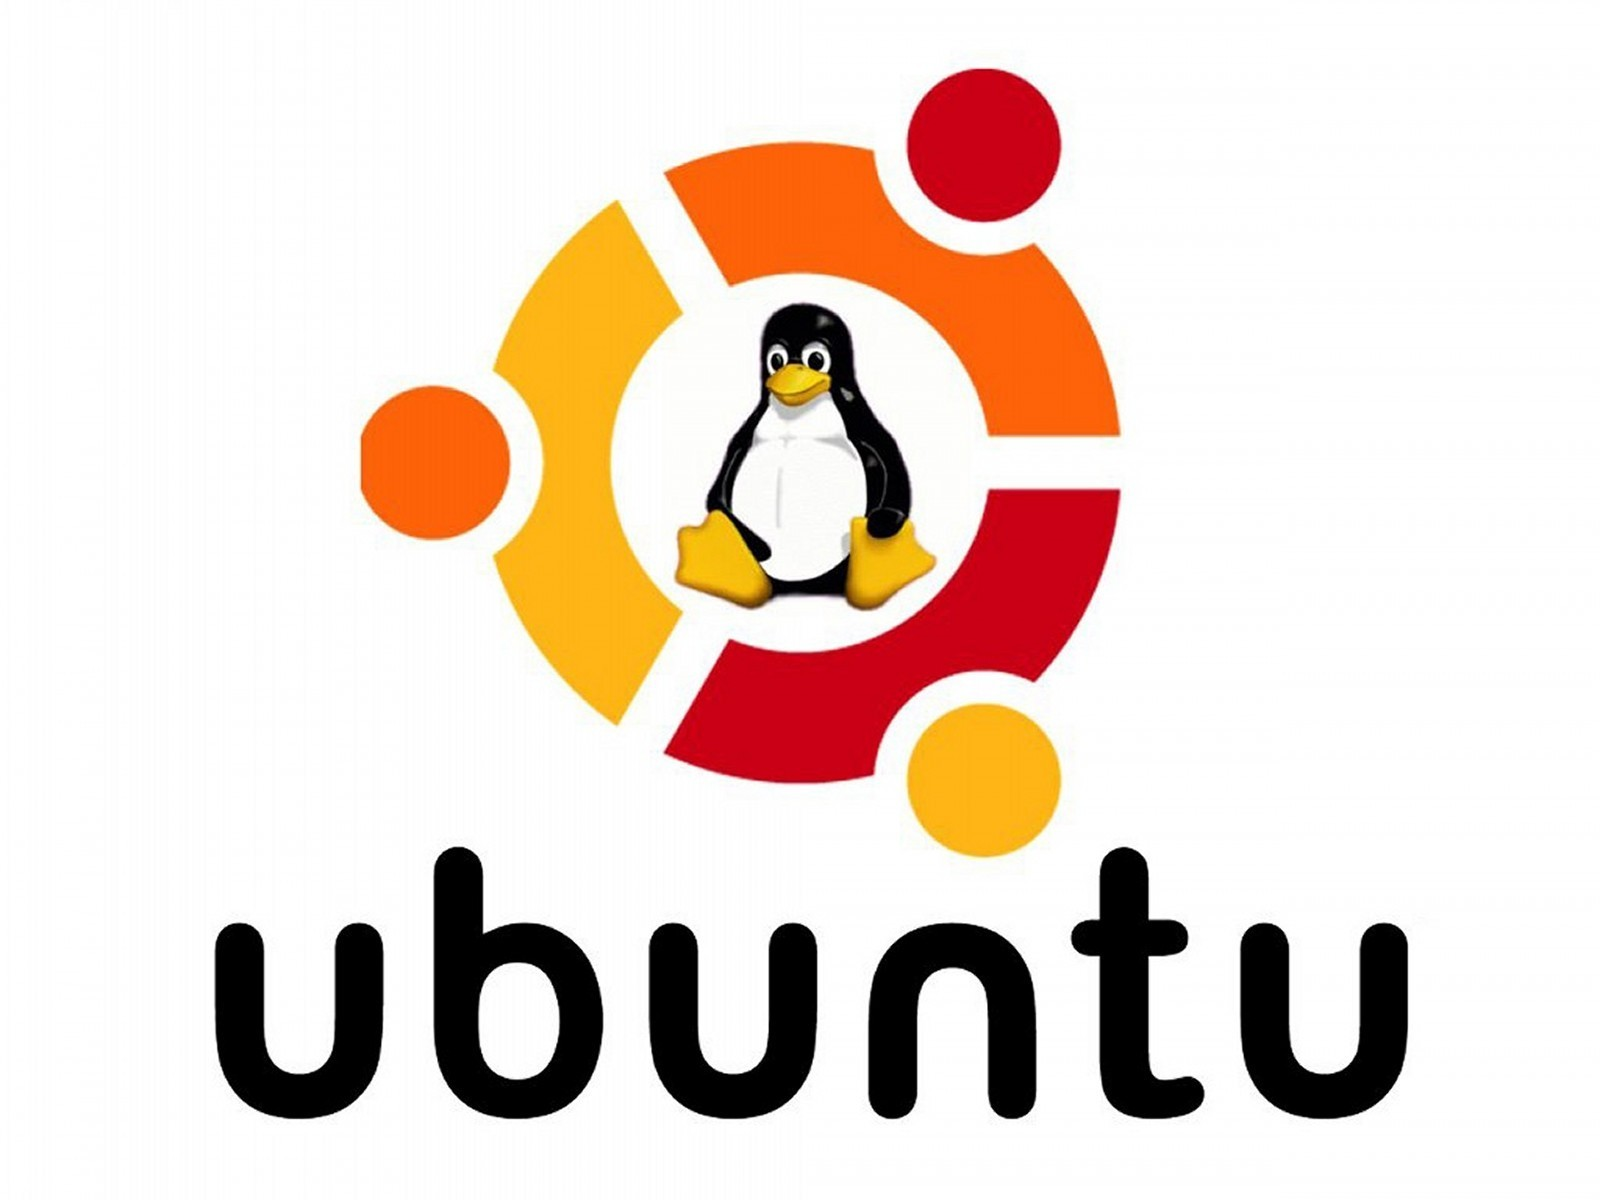 How to Install Ubuntu from USB Flash Drive - ONE TECHNO